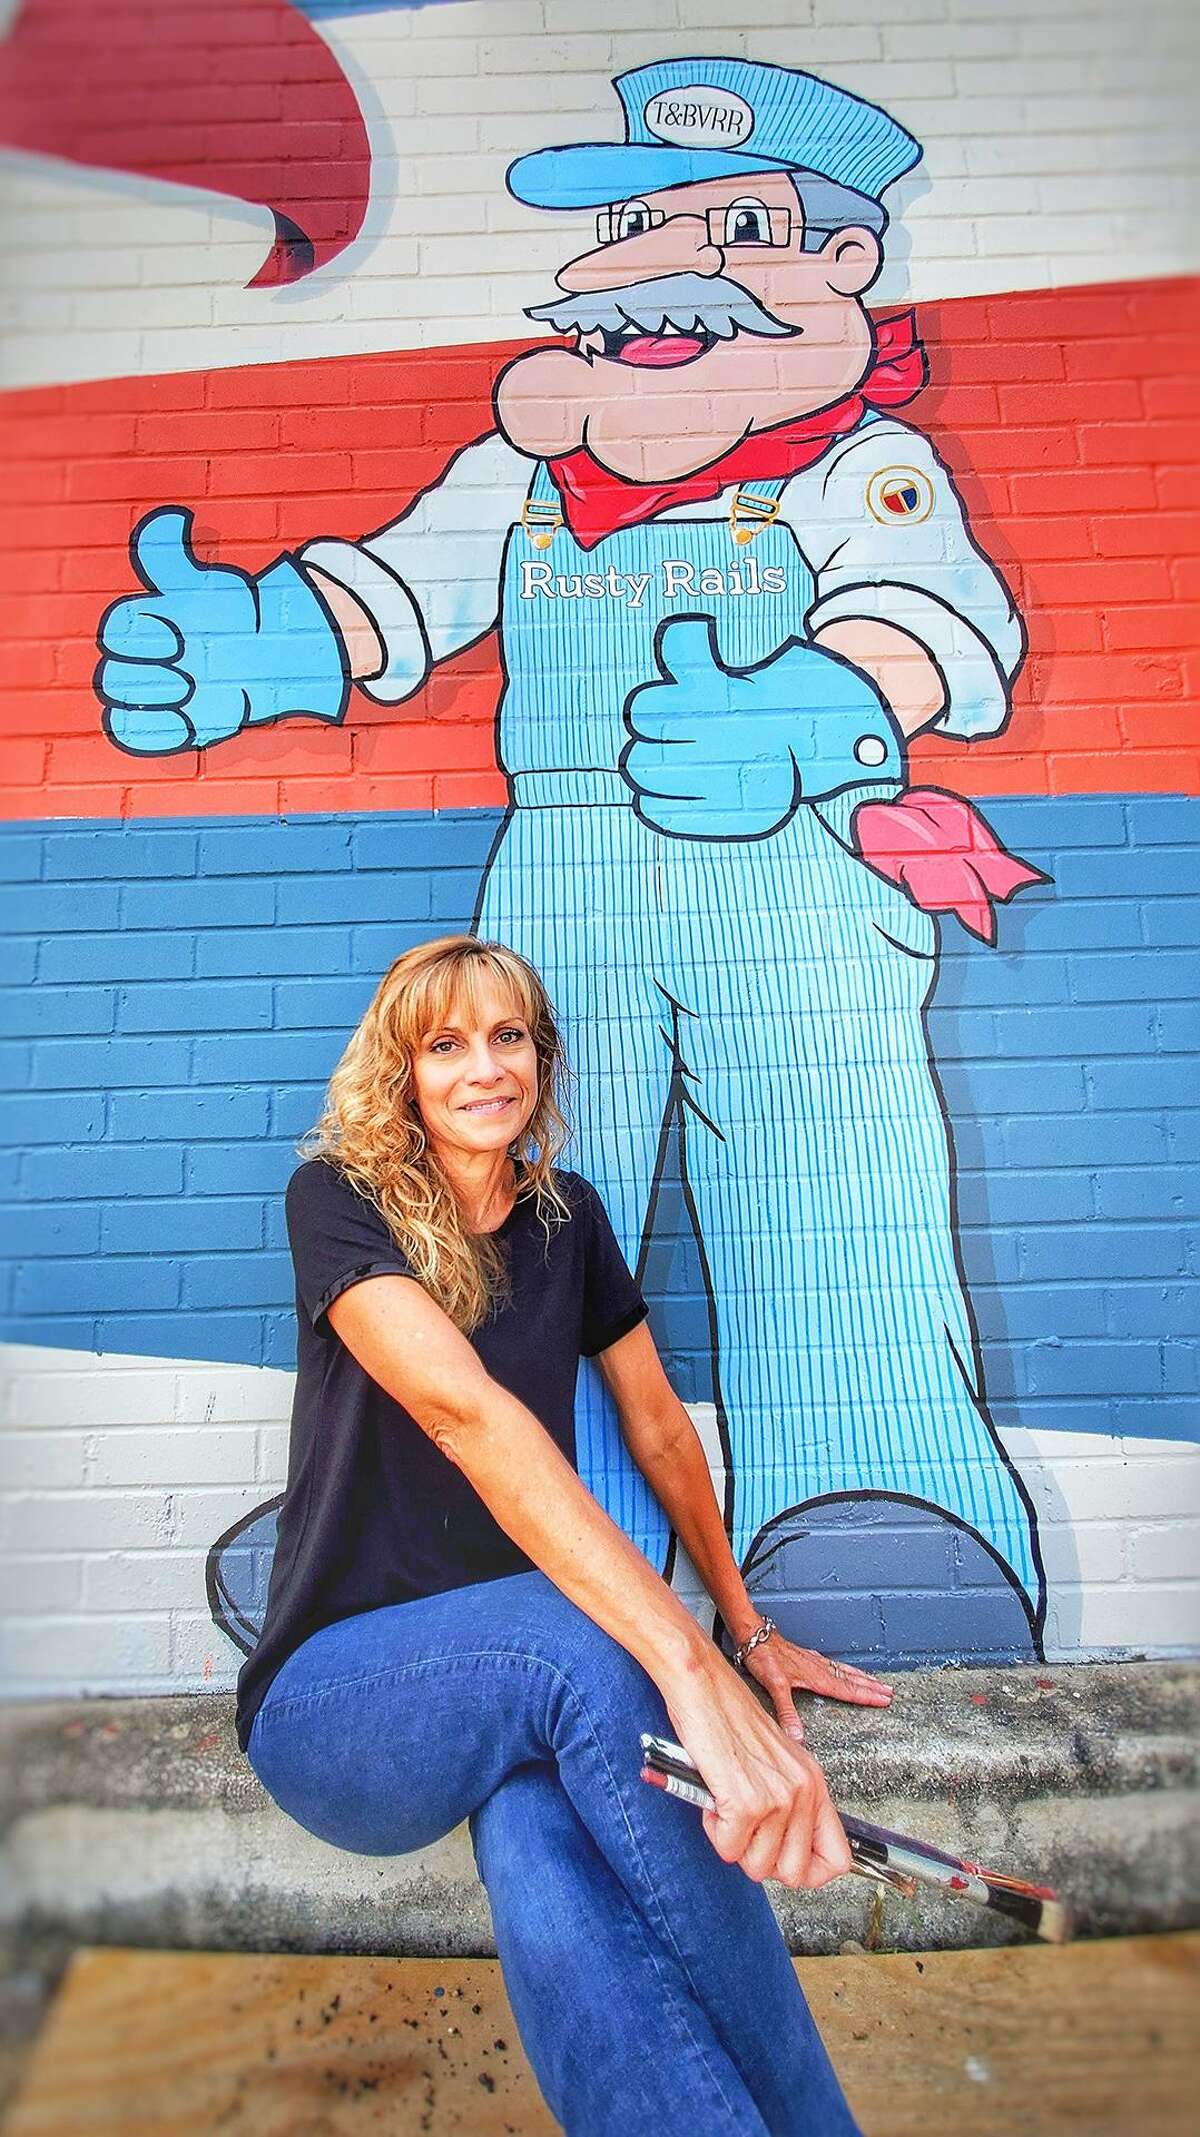 Artist Beth Mankin takes a break for a quick selfie with Tomball mascot Rusty Nails. Mankin was a contributor to the development of the mascot's brand for the city.